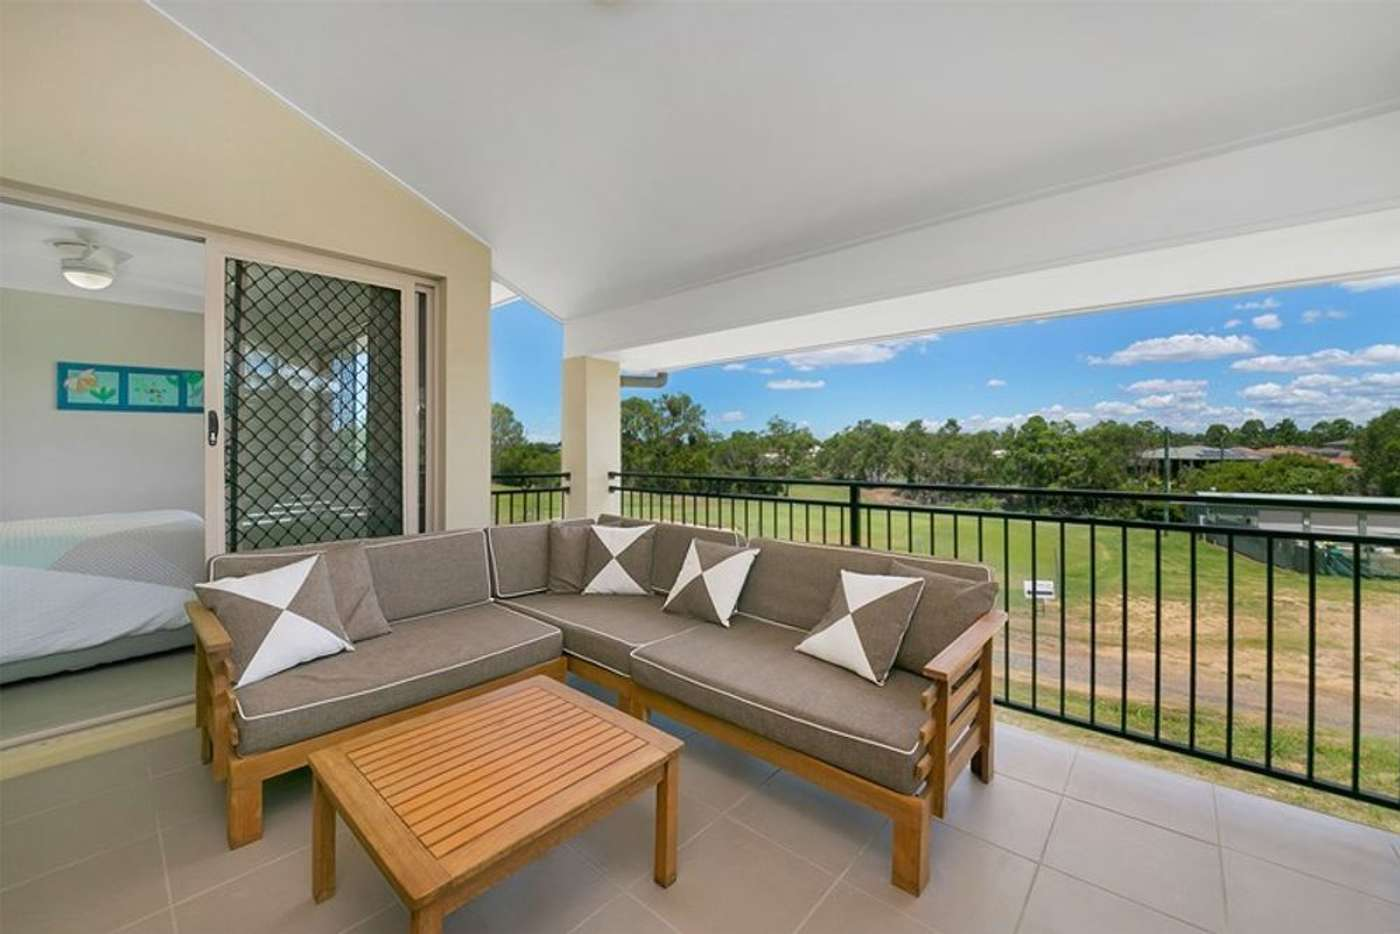 Sixth view of Homely unit listing, 28/5 Pine Valley Drive, Joyner QLD 4500